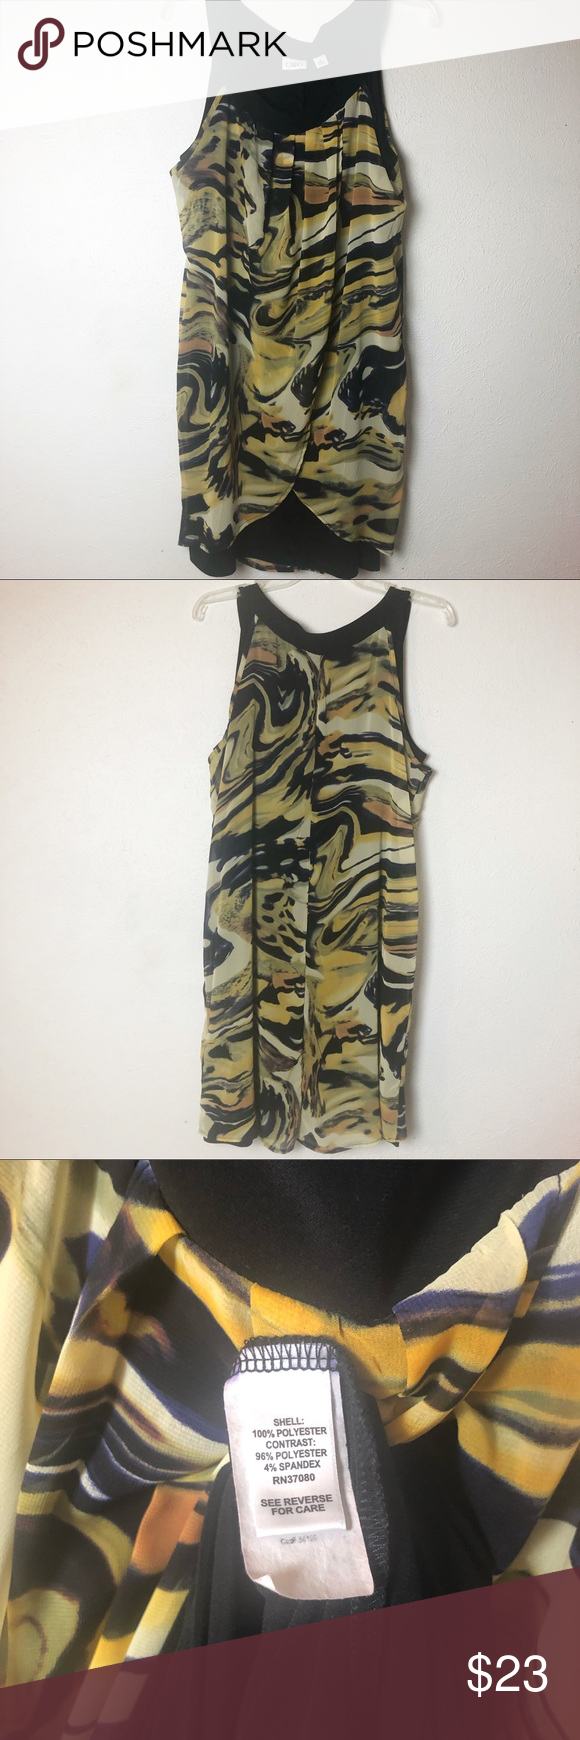 "Cato Layered Sleeveless Dress Size XL Women's Size X. Two layer sleeveless dress. Bottom layer is black. Top layer is a black, tan and gold print that wraps in the front.  Minor thread flaw on right side near seam on last picture.   Approximate Measurements: pit to pit: 21.5"" Length:  38"" Hem: 24"" Cato Dresses Midi #blacksleevelessdress"